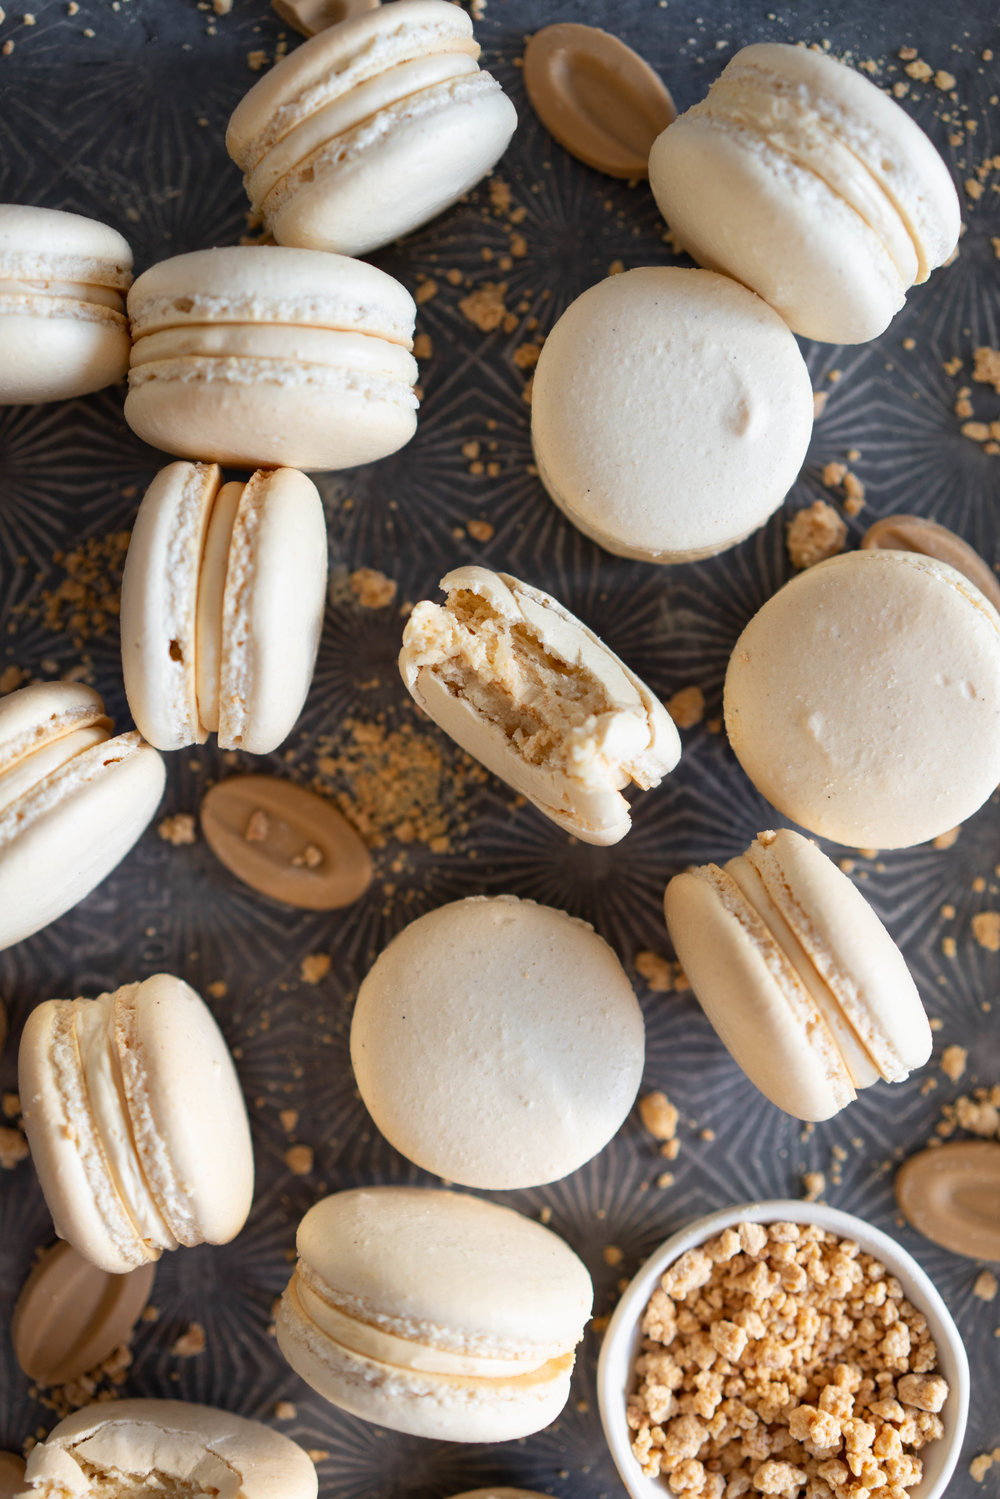 Toasted Sugar Vanilla Bean Macaron shells are sandwiched with a silky, creamy German buttercream loaded with caramelised white chocolate, Subtle elevated flavours makes this a perfect simple recipe that is sure to wow your friends or make the perfect treat or gift. #frenchmacaron #macaronrecipe